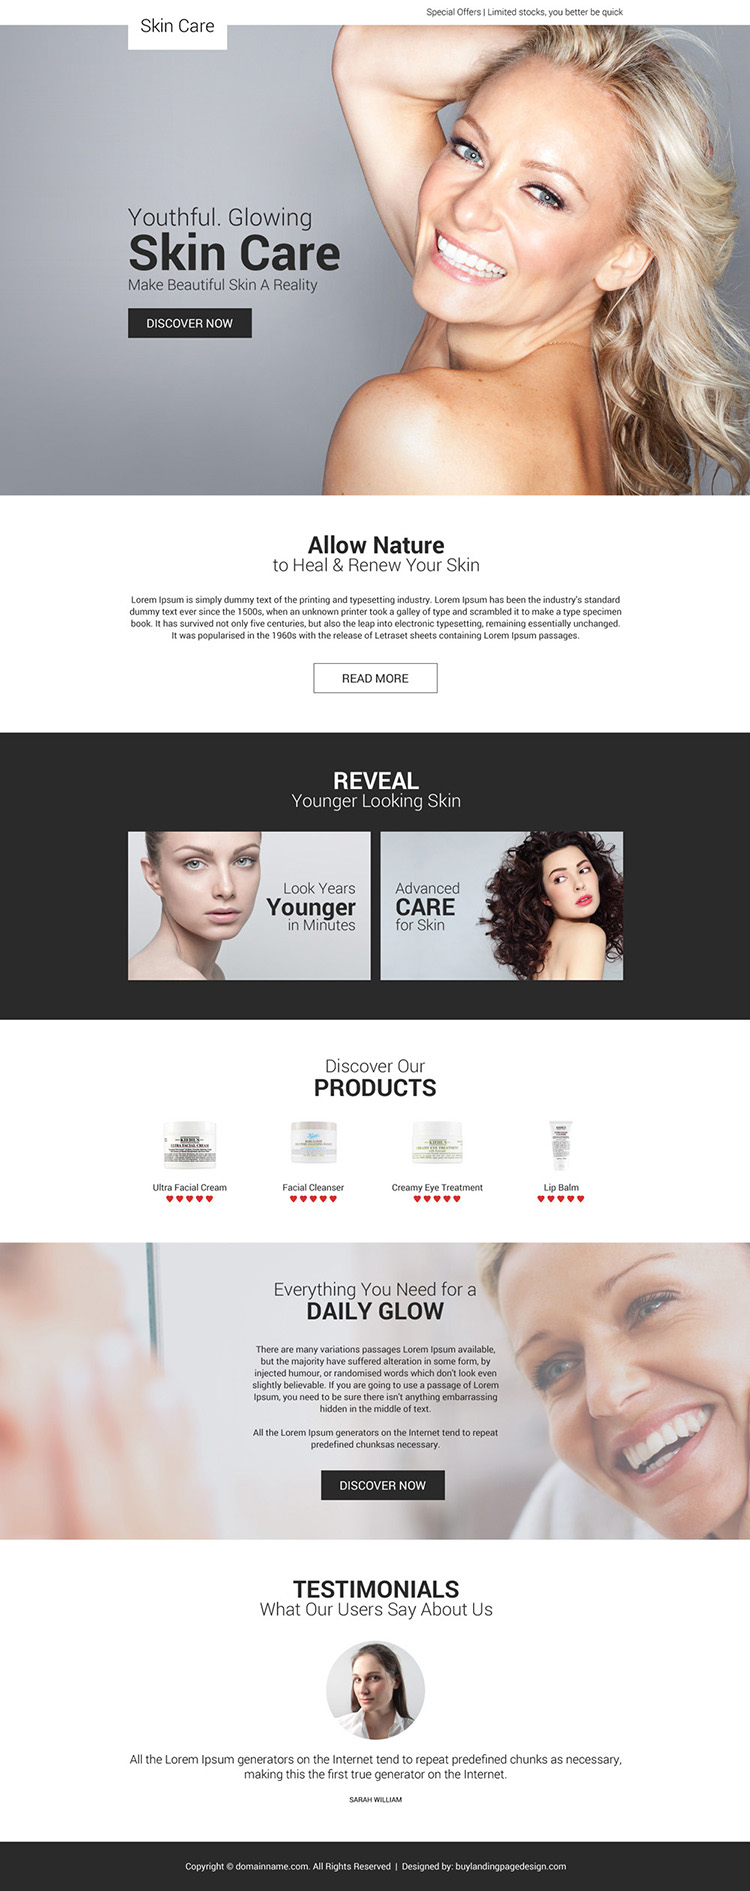 youthful glowing skin care responsive landing page design